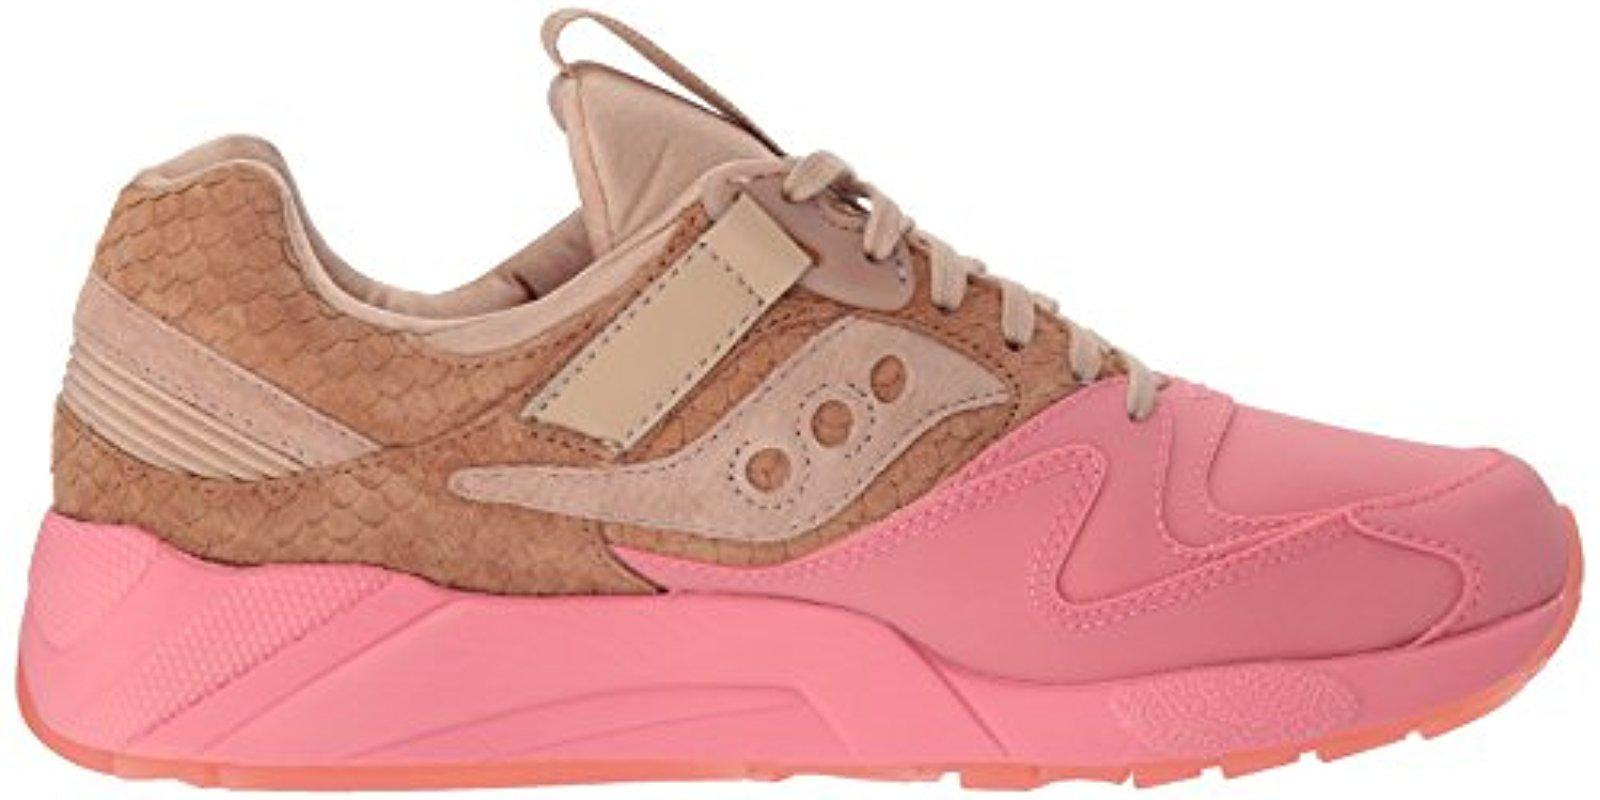 pink and tan saucony